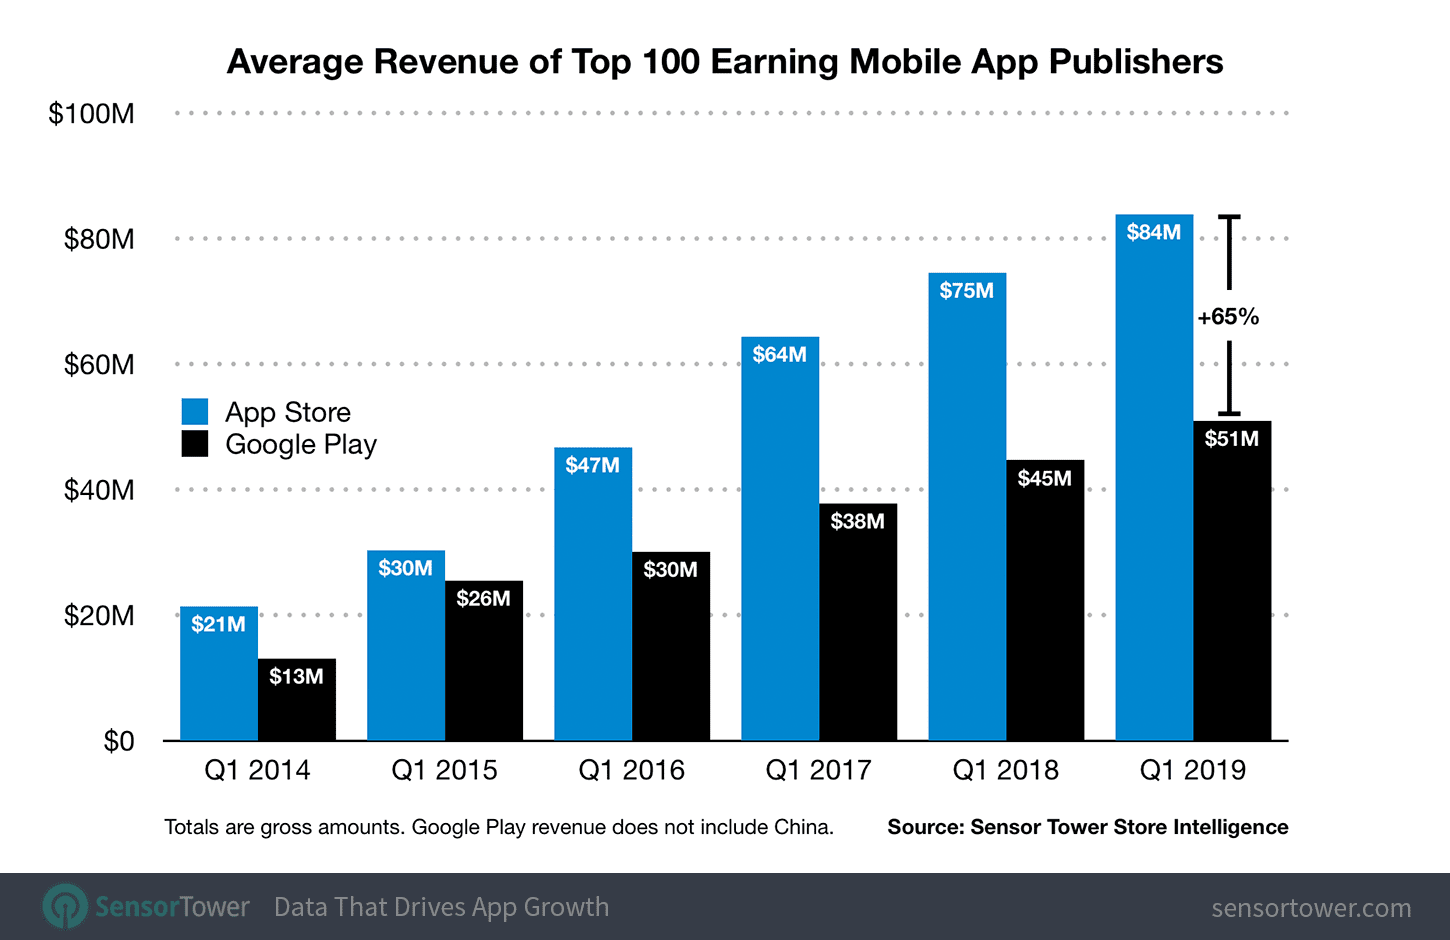 Apple's Top App Store Publishers Are Earning 64 Percent More Than Google Play's on Average